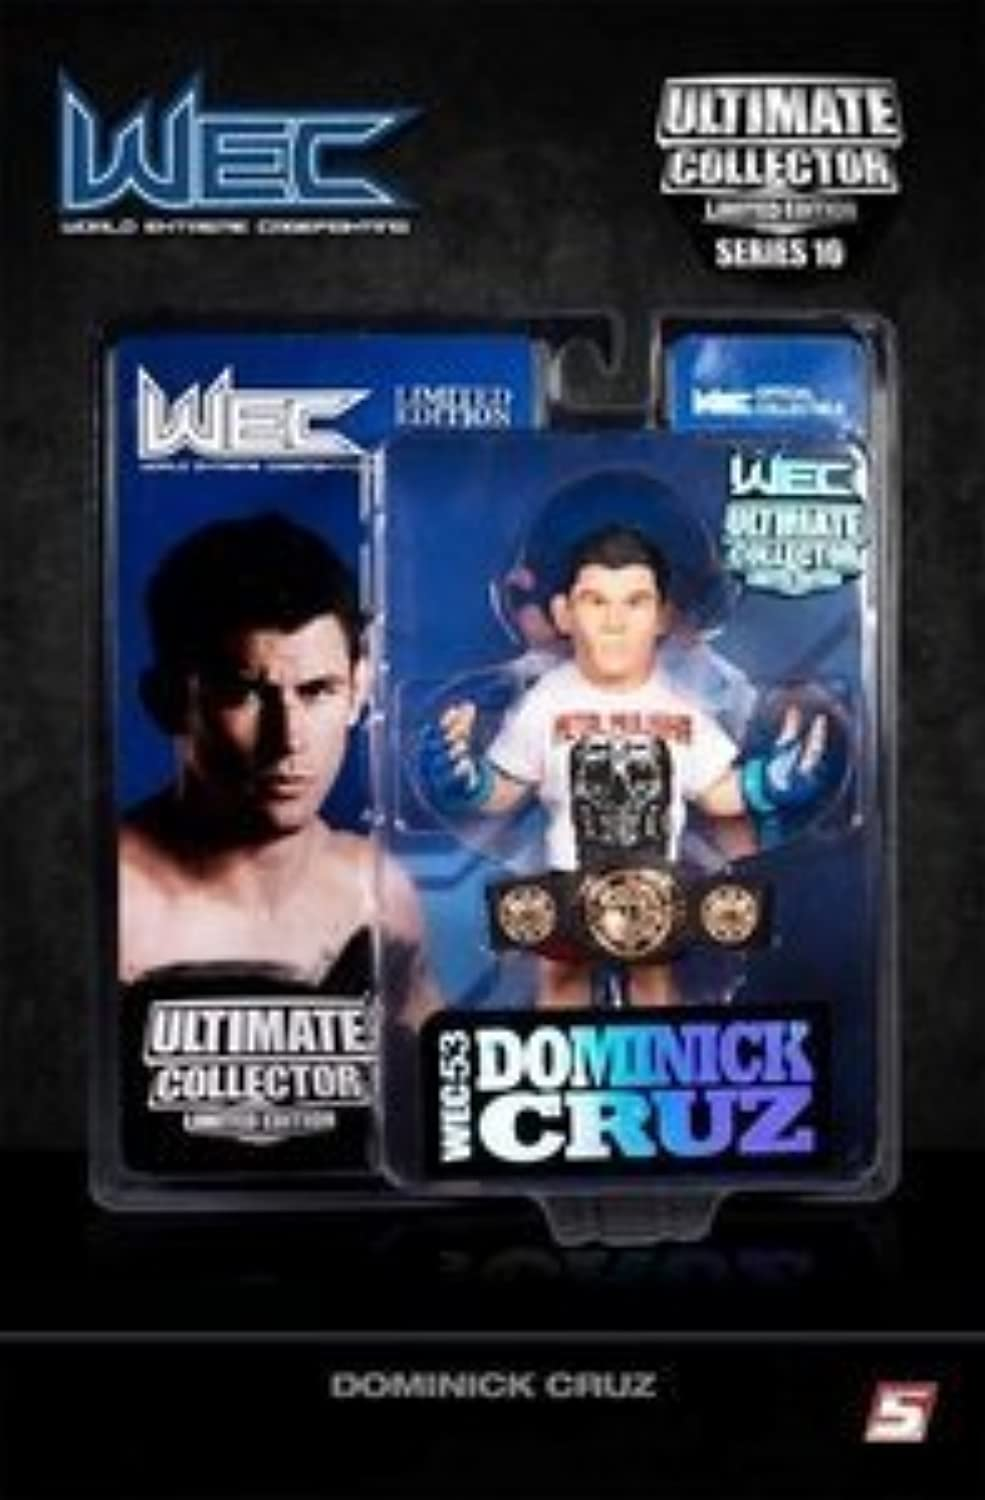 UFC Ultimate Collector Series 10 WEC Limited Edition Dominick Cruz Numbered to 750 by Round 5 MMA